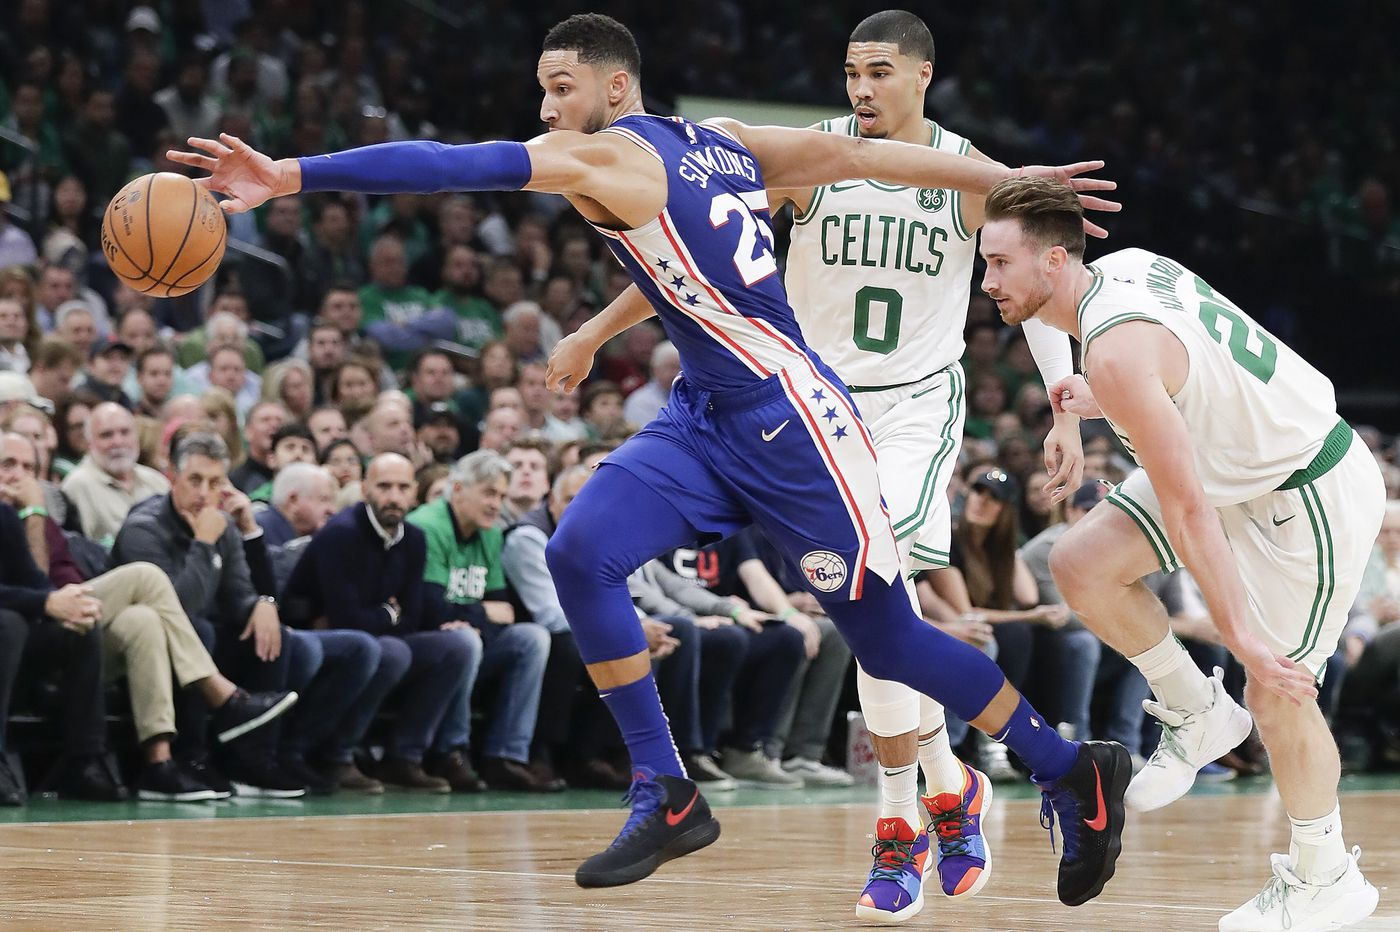 Sixers lose to Celtics in NBA season opener despite solid outing by Ben Simmons